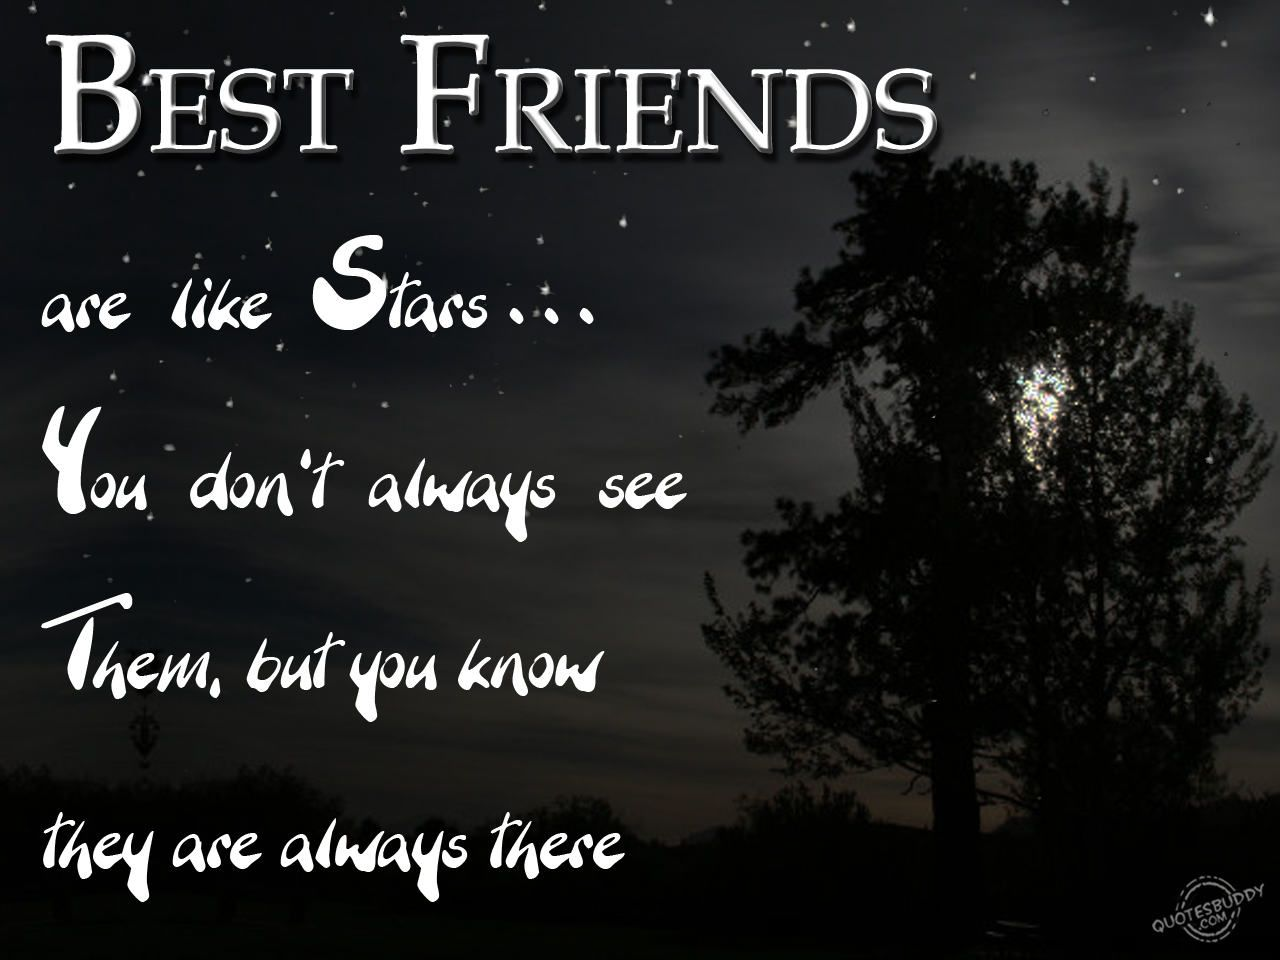 Best Friend Quotes Sayings Sayings For Friends  This Picture Was Submittedgurinder Jeet